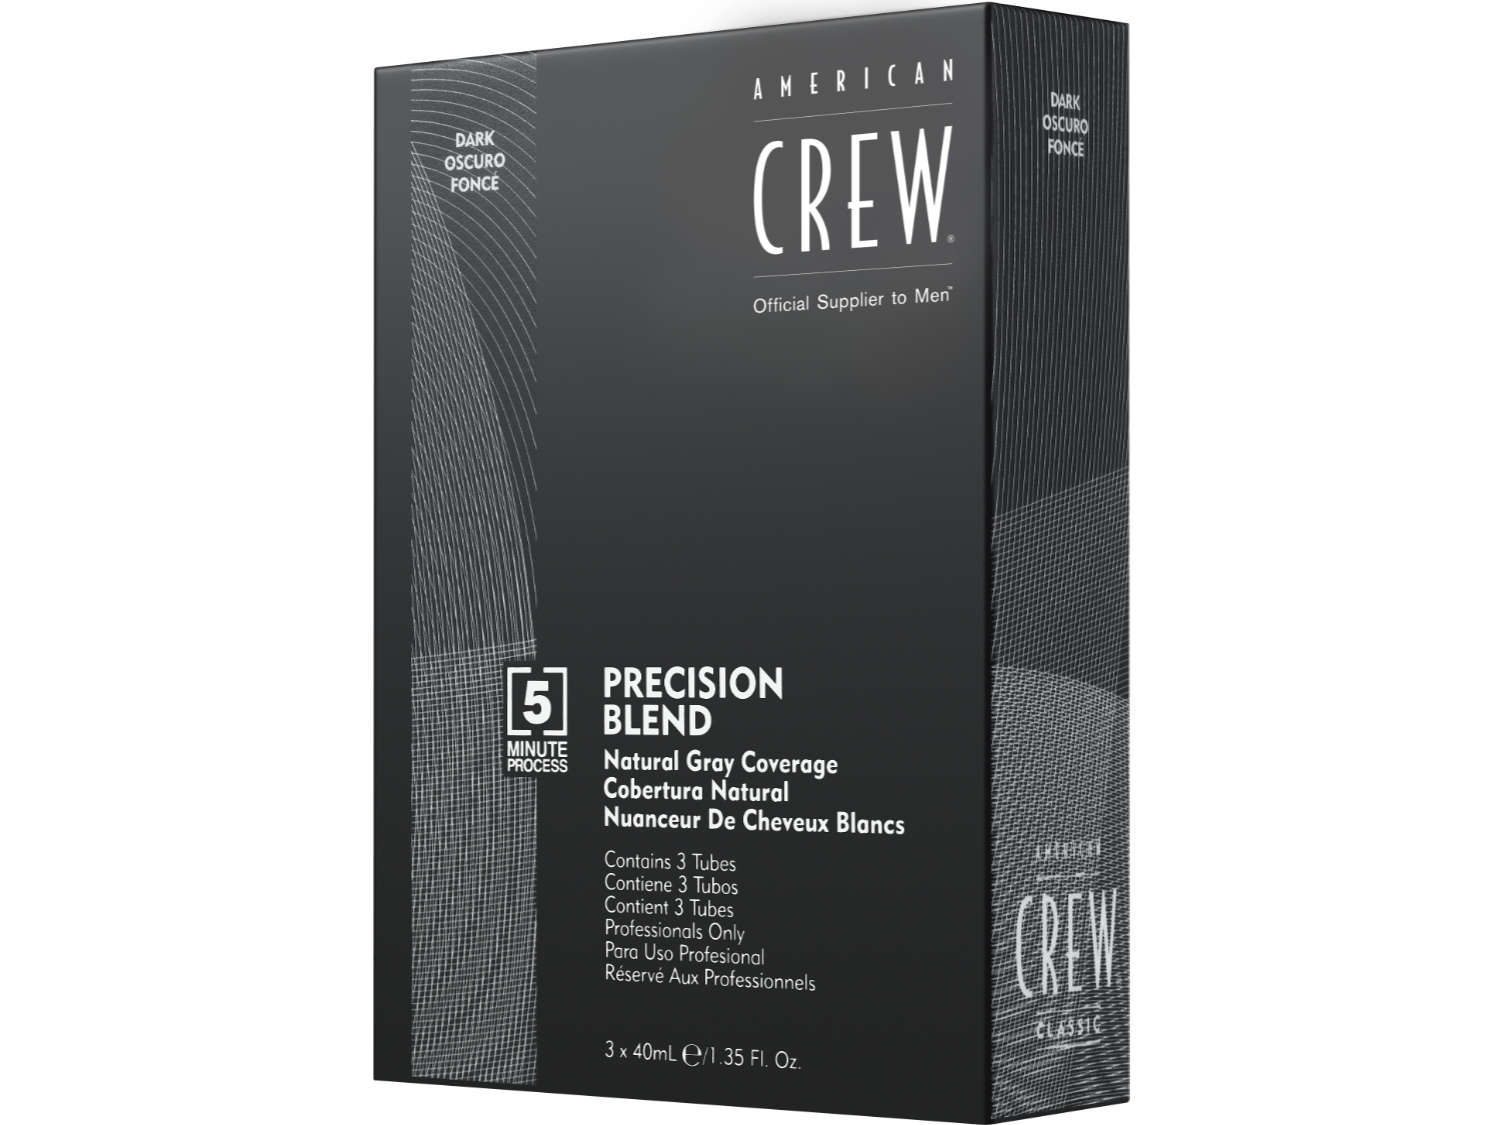 Arma Beauty - American Crew - Precision Blend Shades